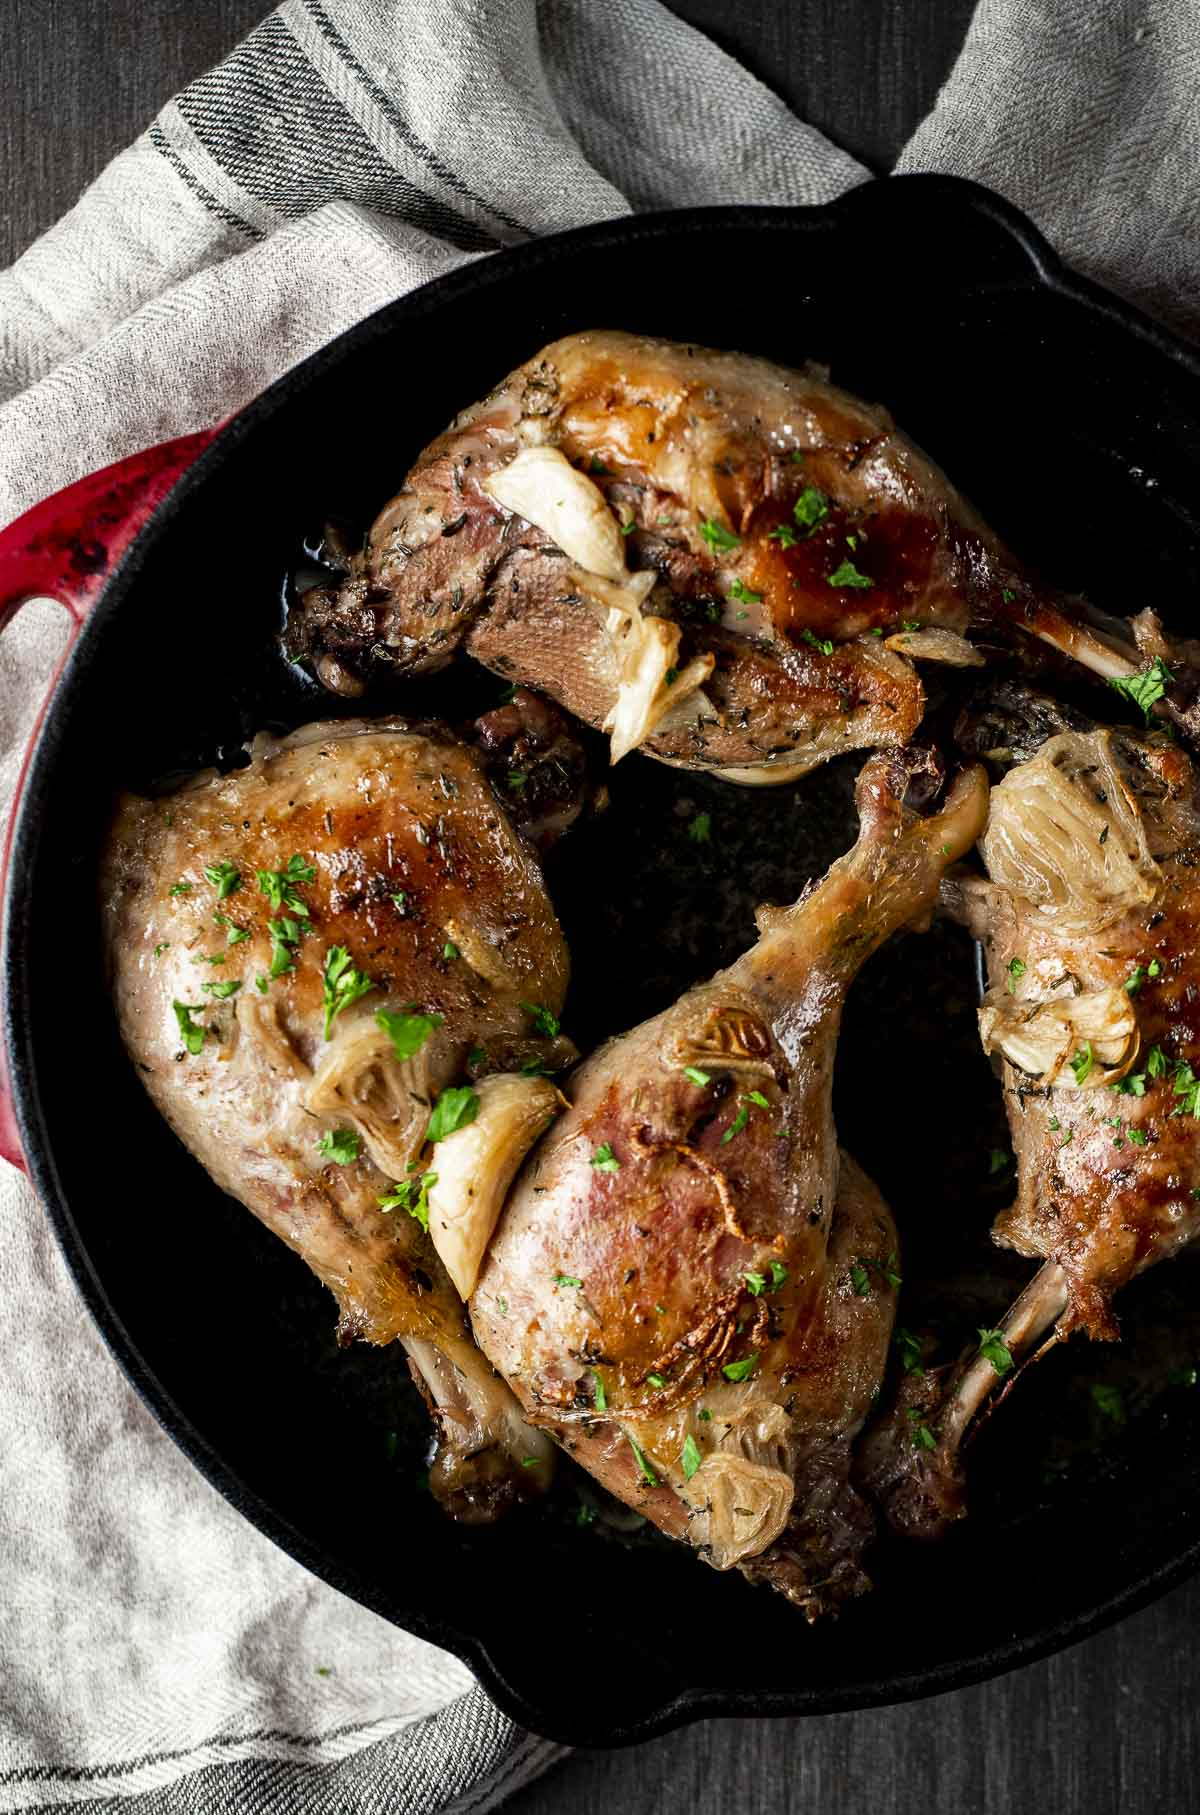 Four duck legs broiled in a cast iron pan.